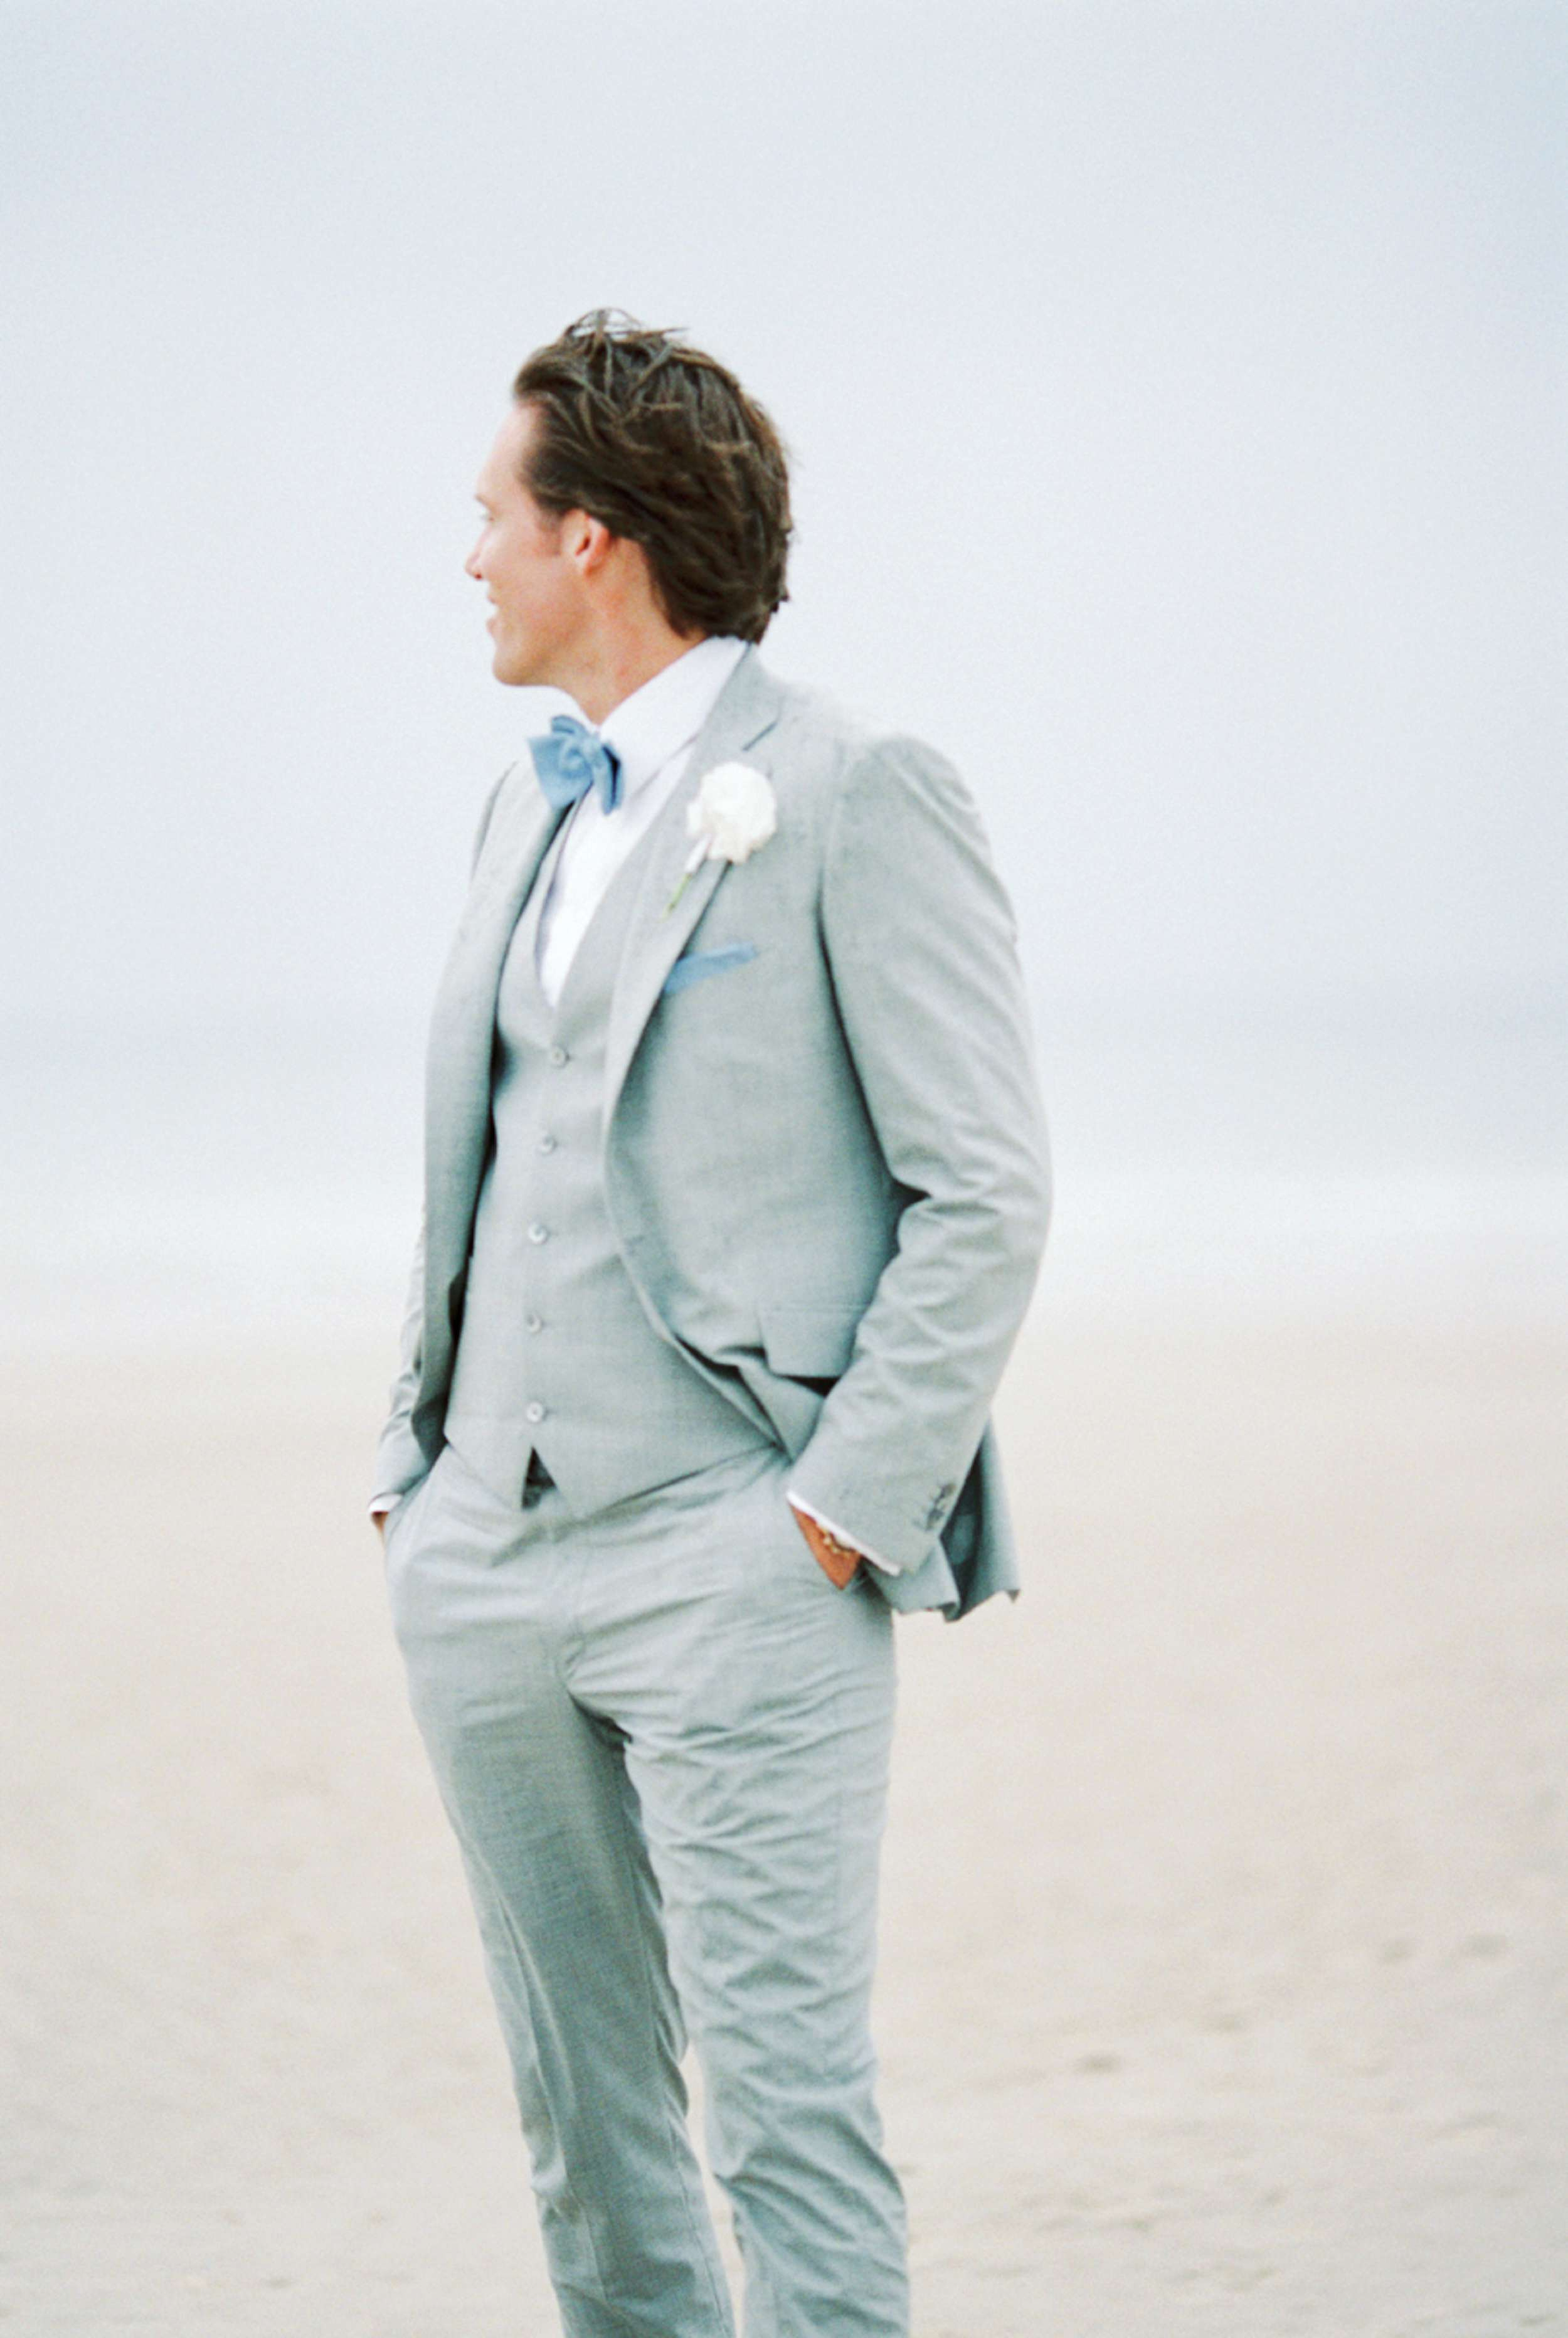 Groom beach wedding North Sea portrait